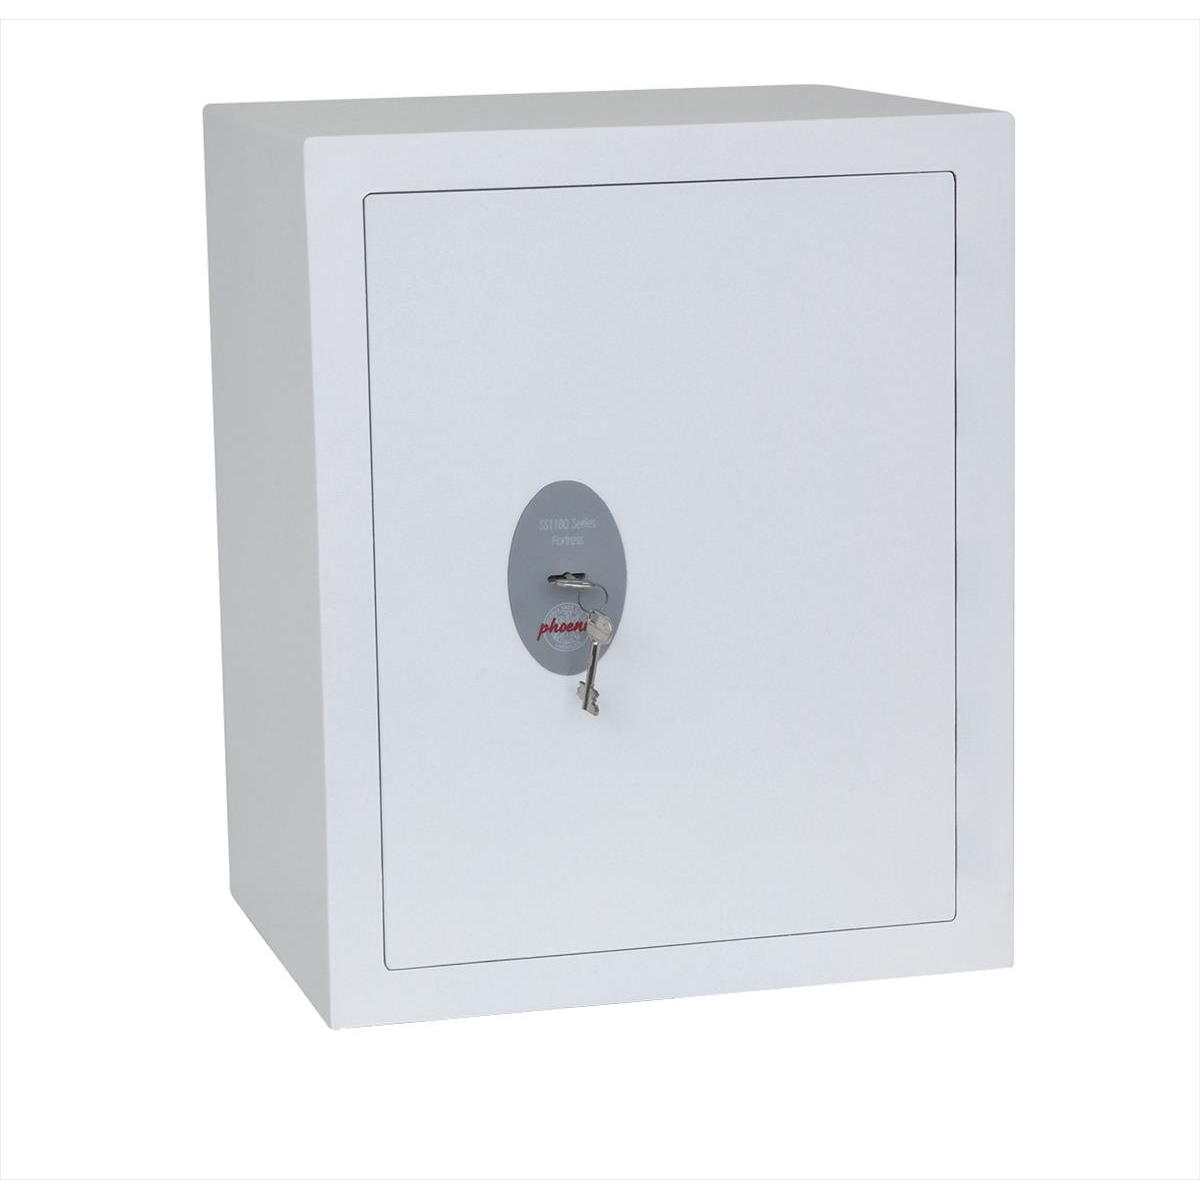 Phoenix Fortress High Security Safe Key Lock 42L Capacity 37kg W450xD350xH550mm Ref SS1183K